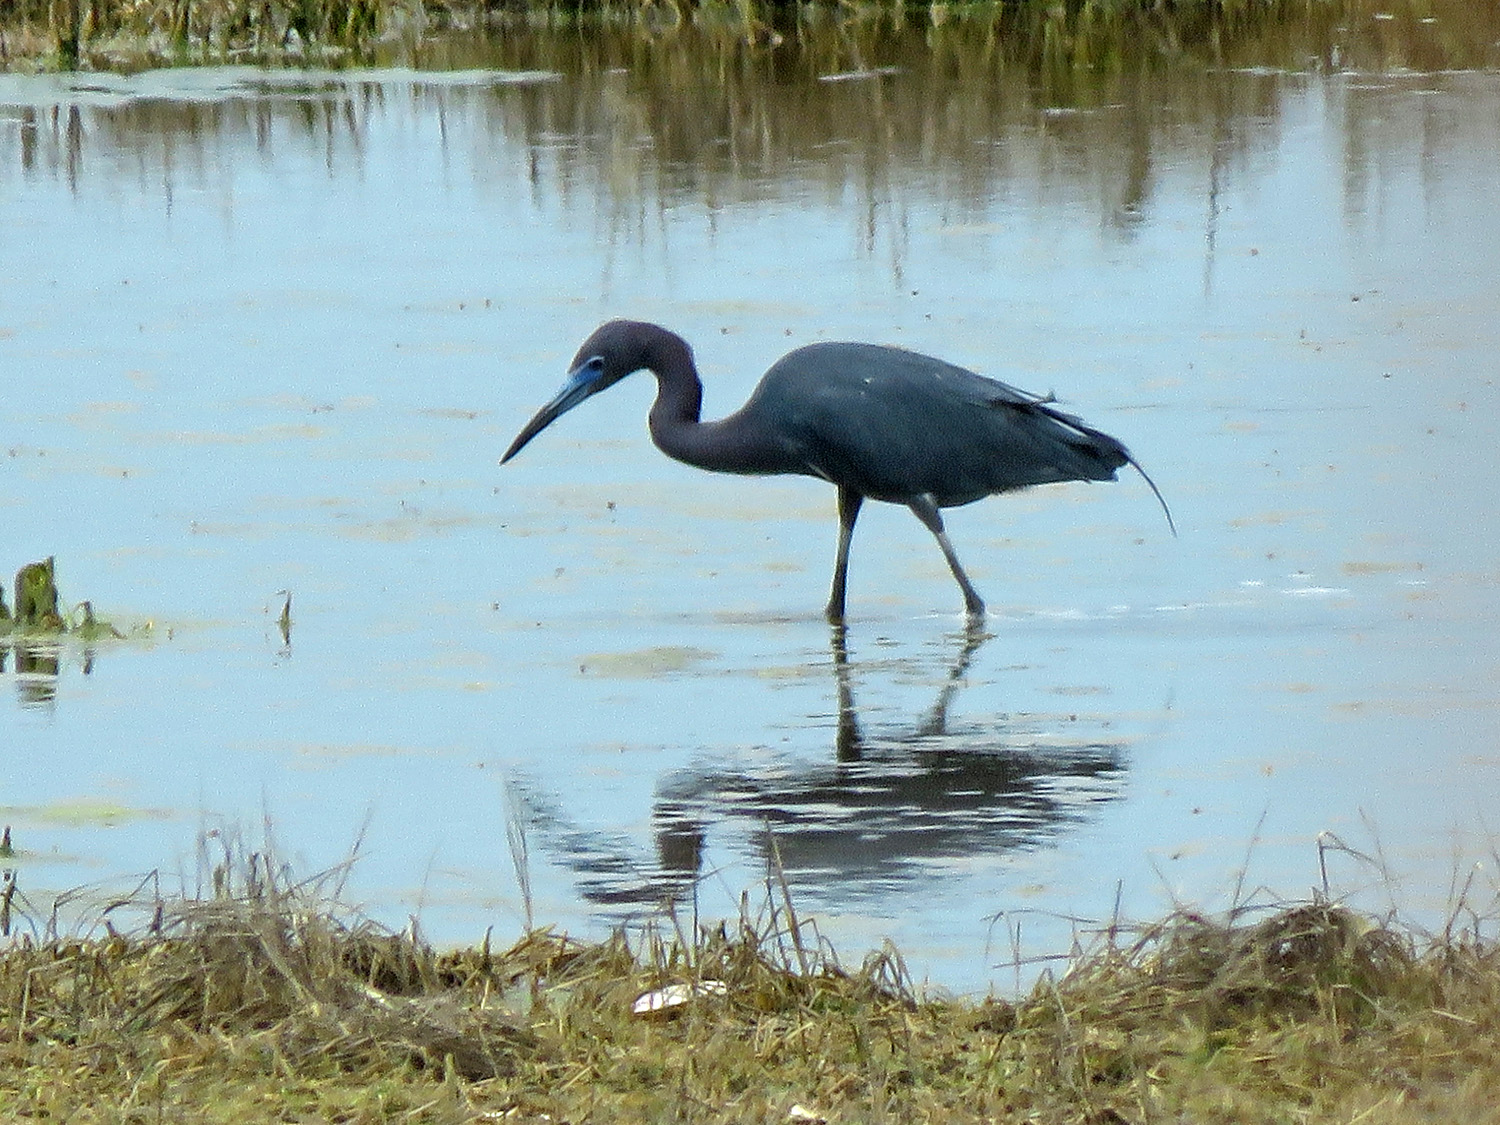 Adult little blue heron, Lido Beach Passive Nature Area, May 17, 2019